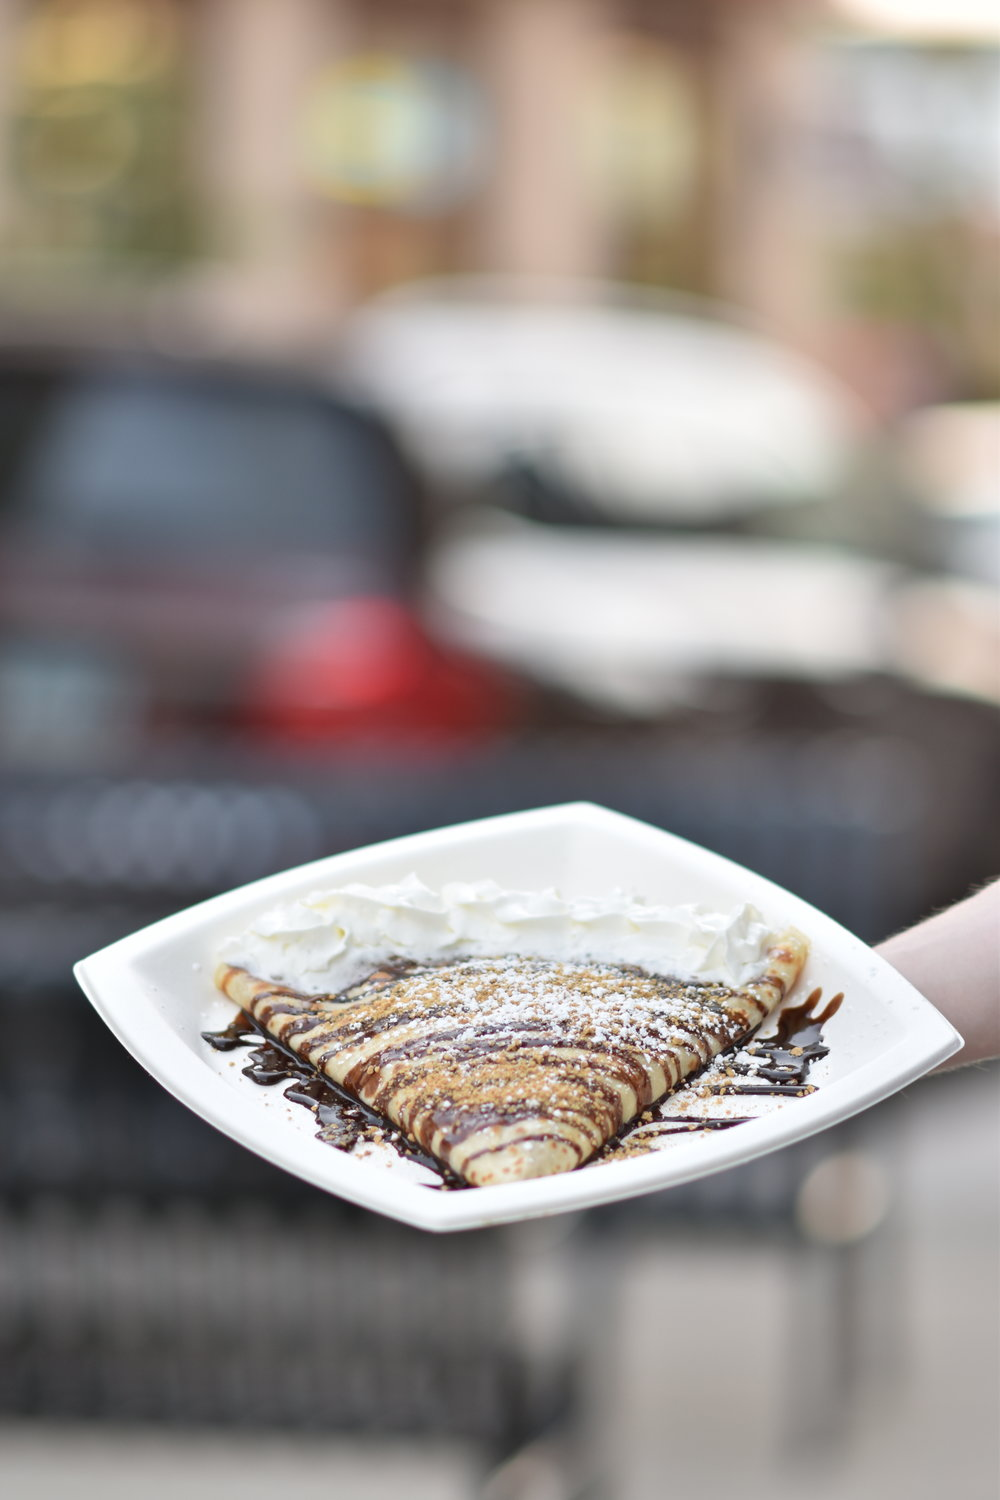 Tomorrow is the one year anniversary of the opening of Farmhouse Crepes in Storrs Center. Delicious Gluttonous Crepes are being served to content customers. (Kevin Lindstrom/The Daily Campus)